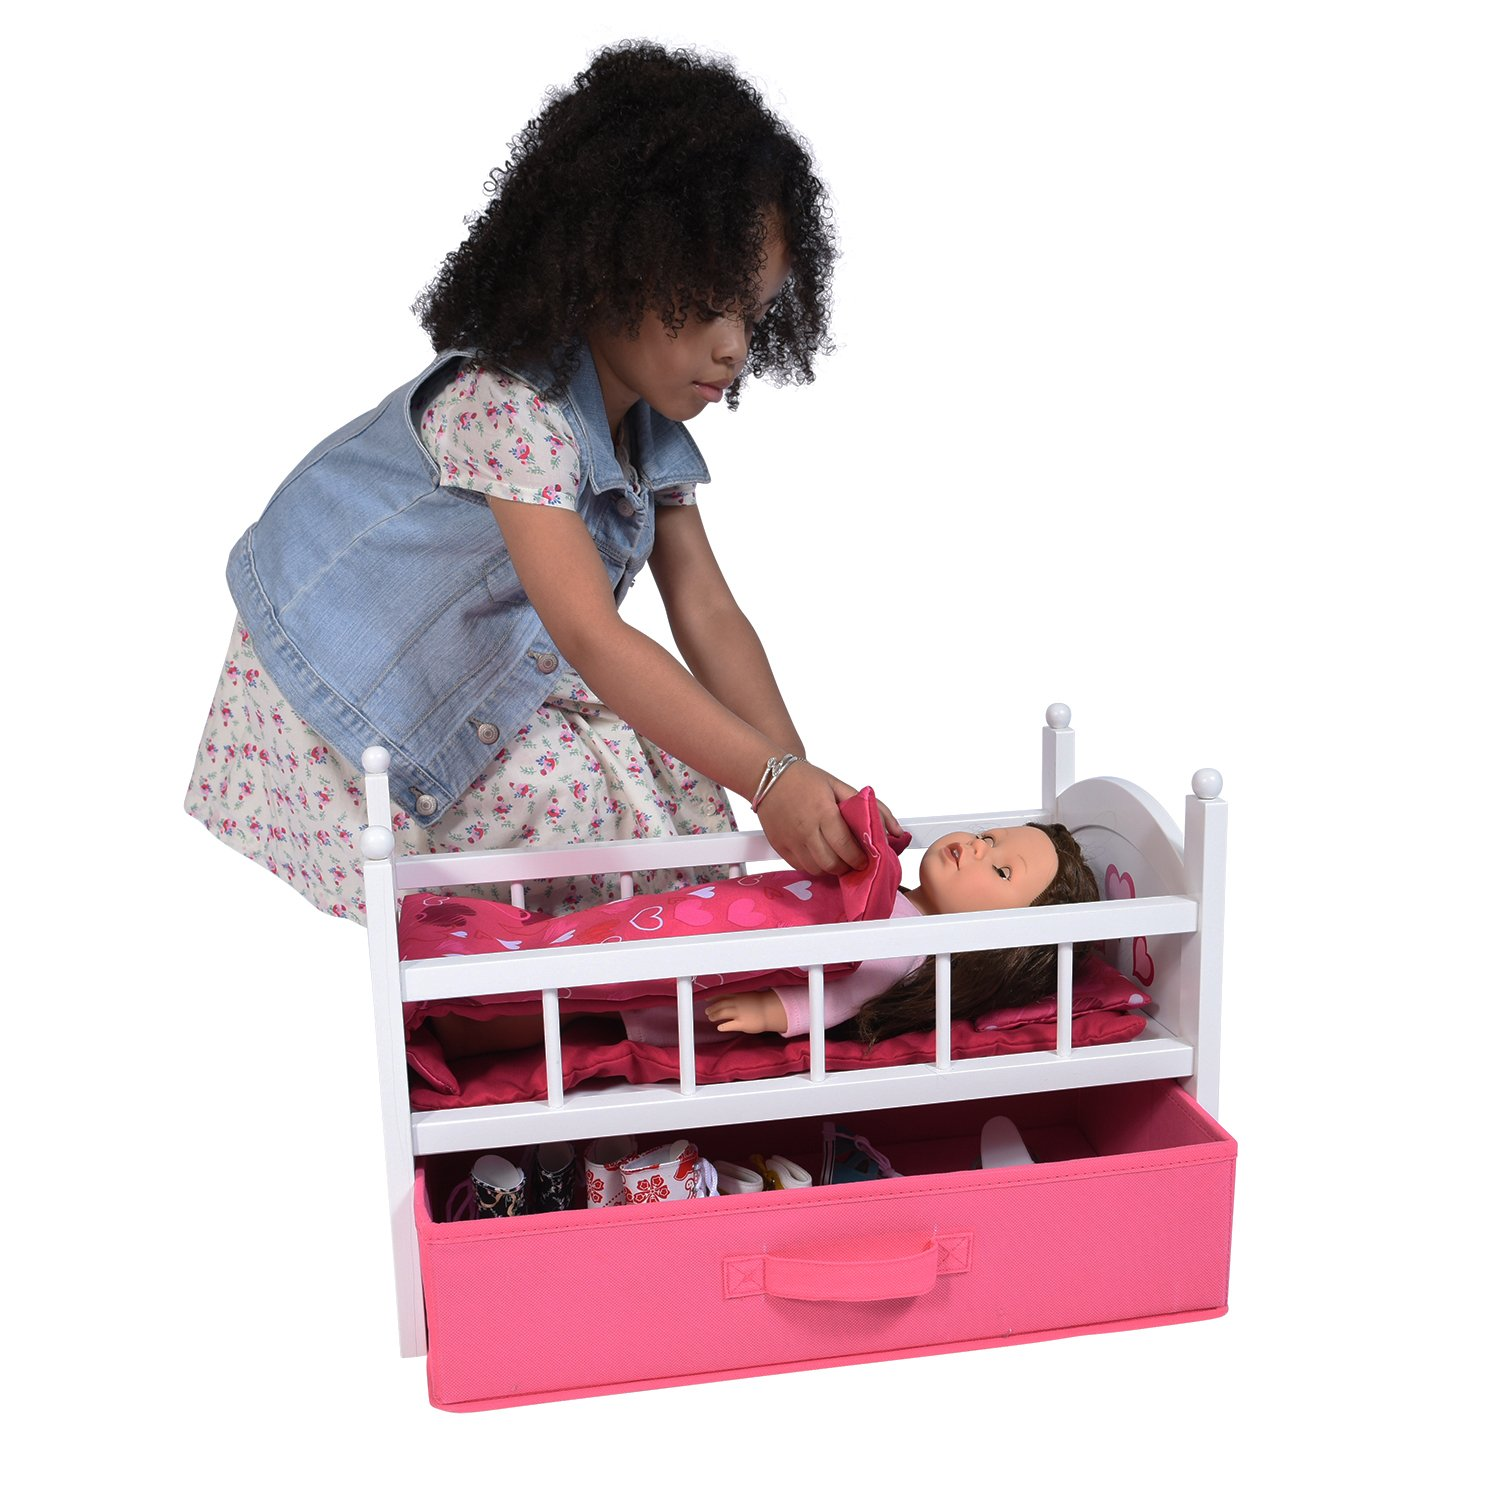 Amazon.com: The New York Doll Collection Wooden Dolls Crib with ...